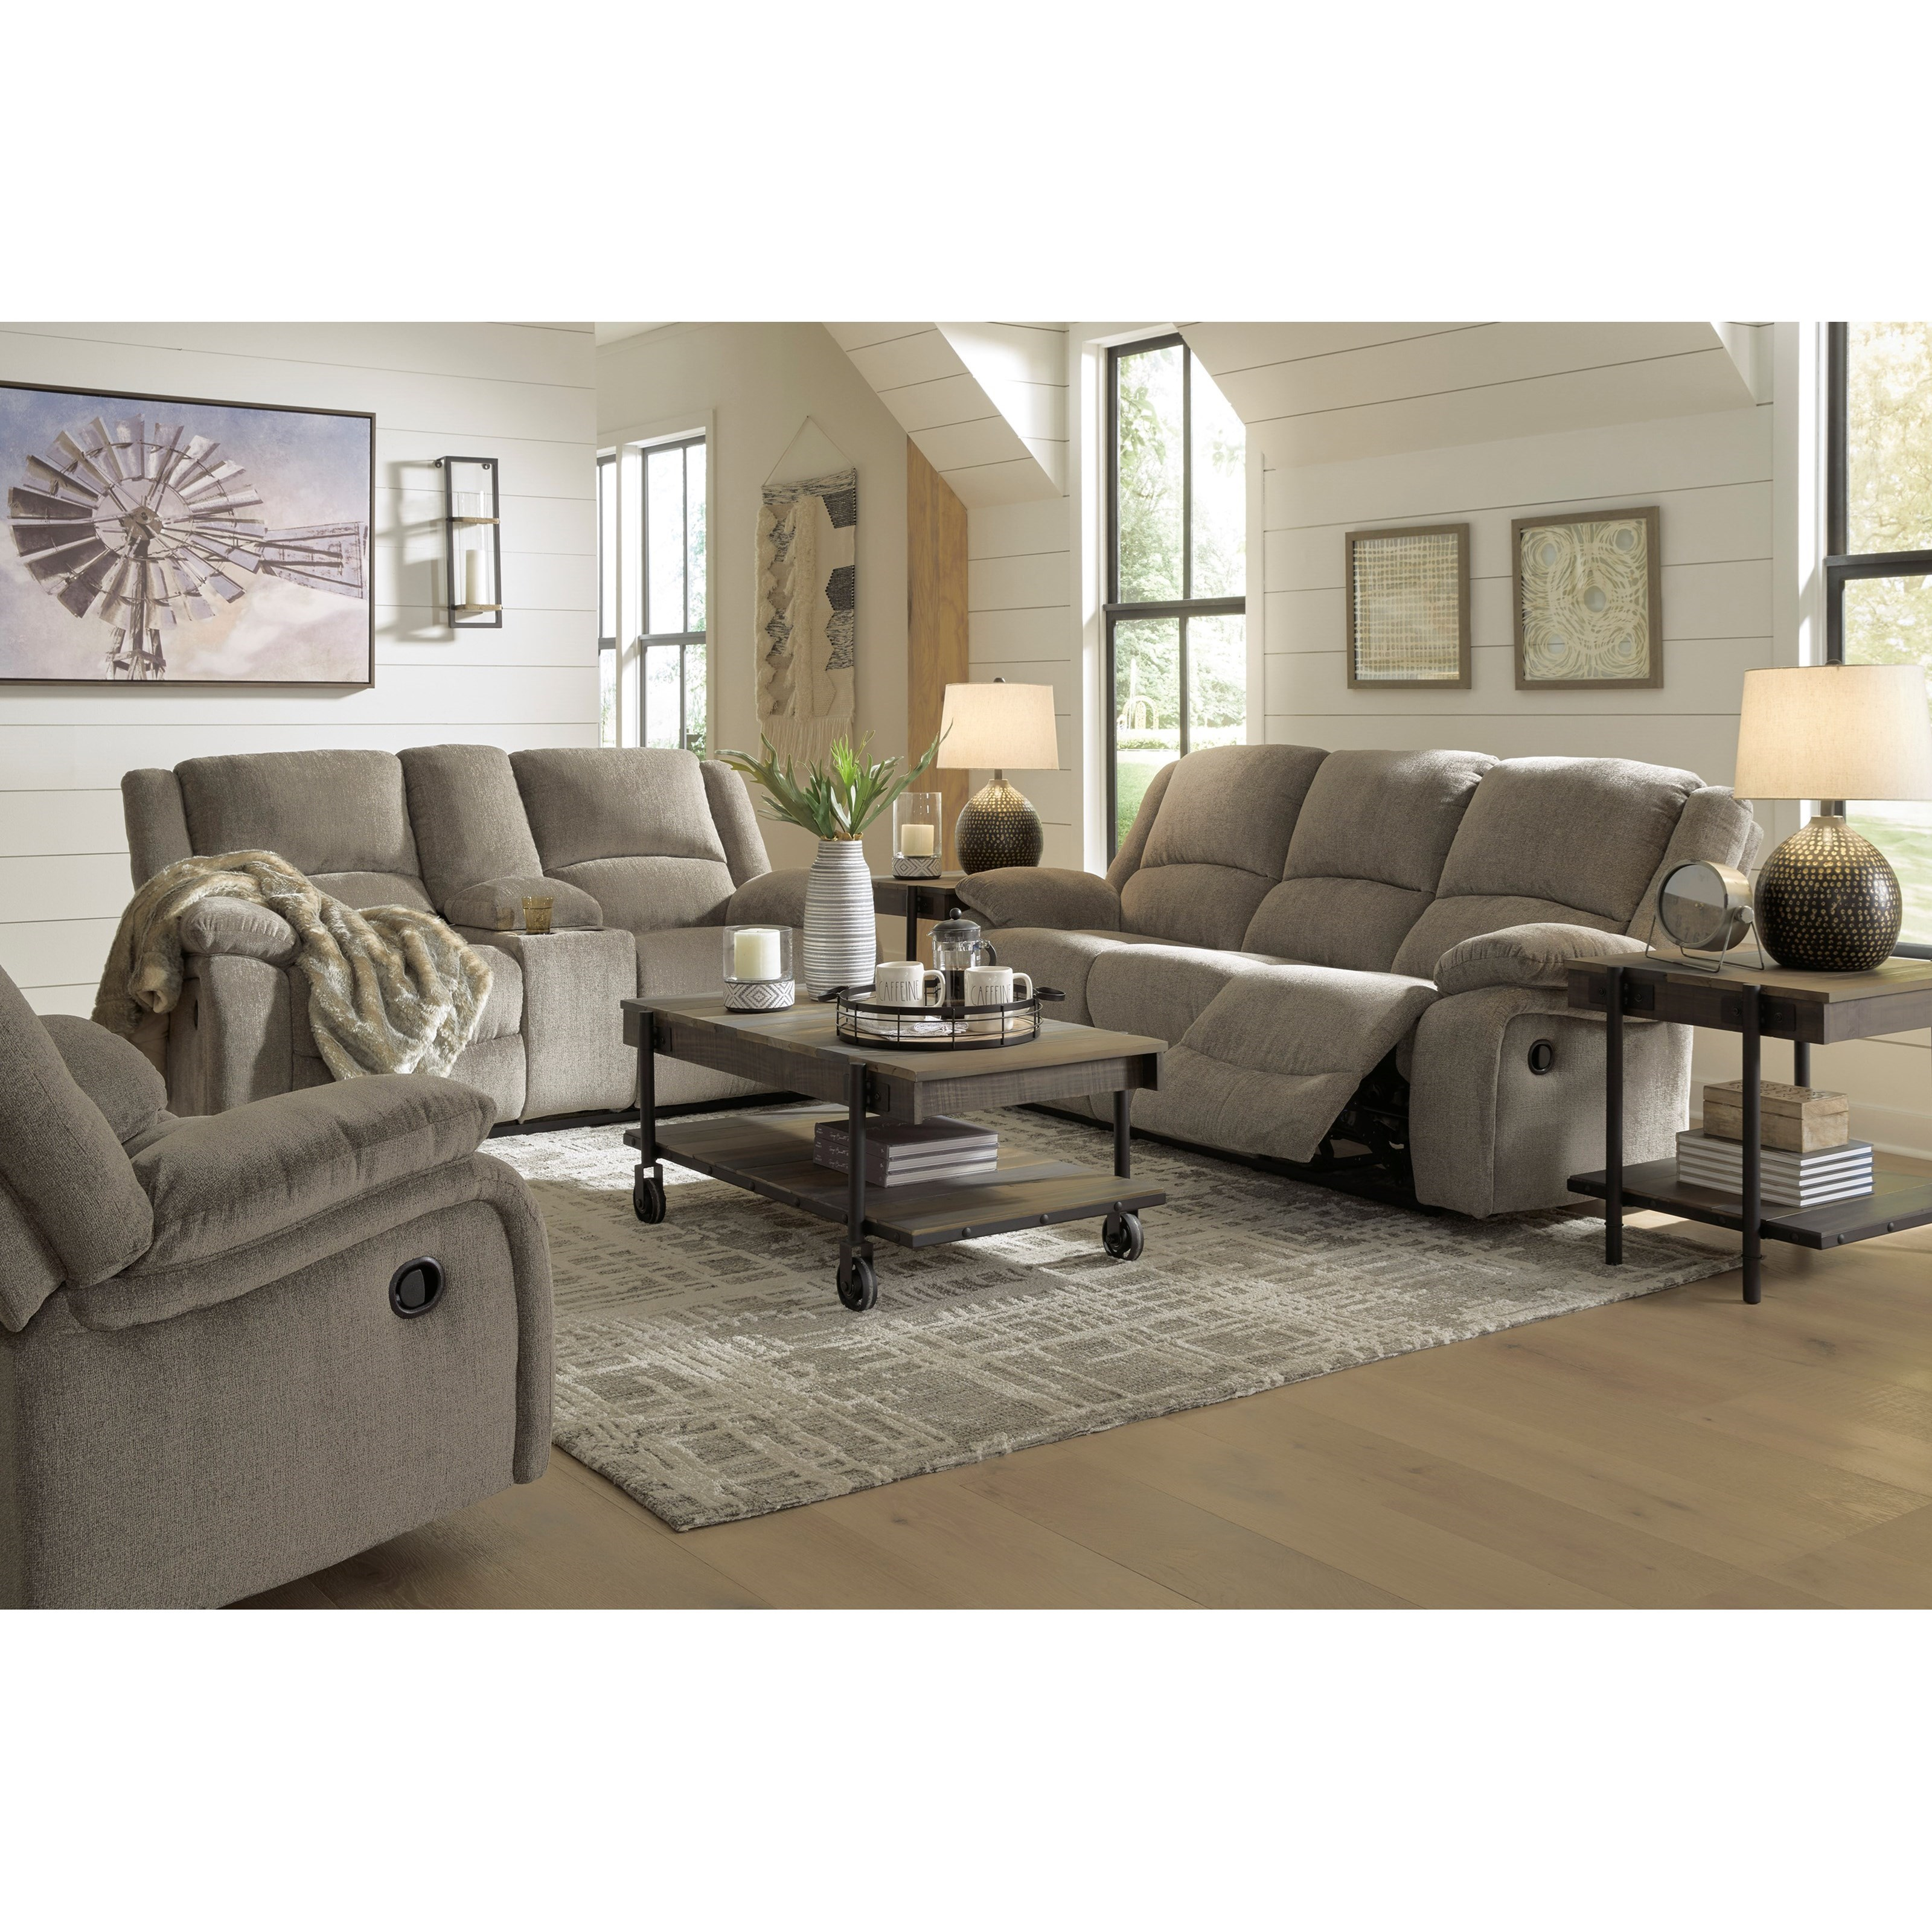 Draycoll Reclining Living Room Group by Signature Design by Ashley at Sam Levitz Outlet